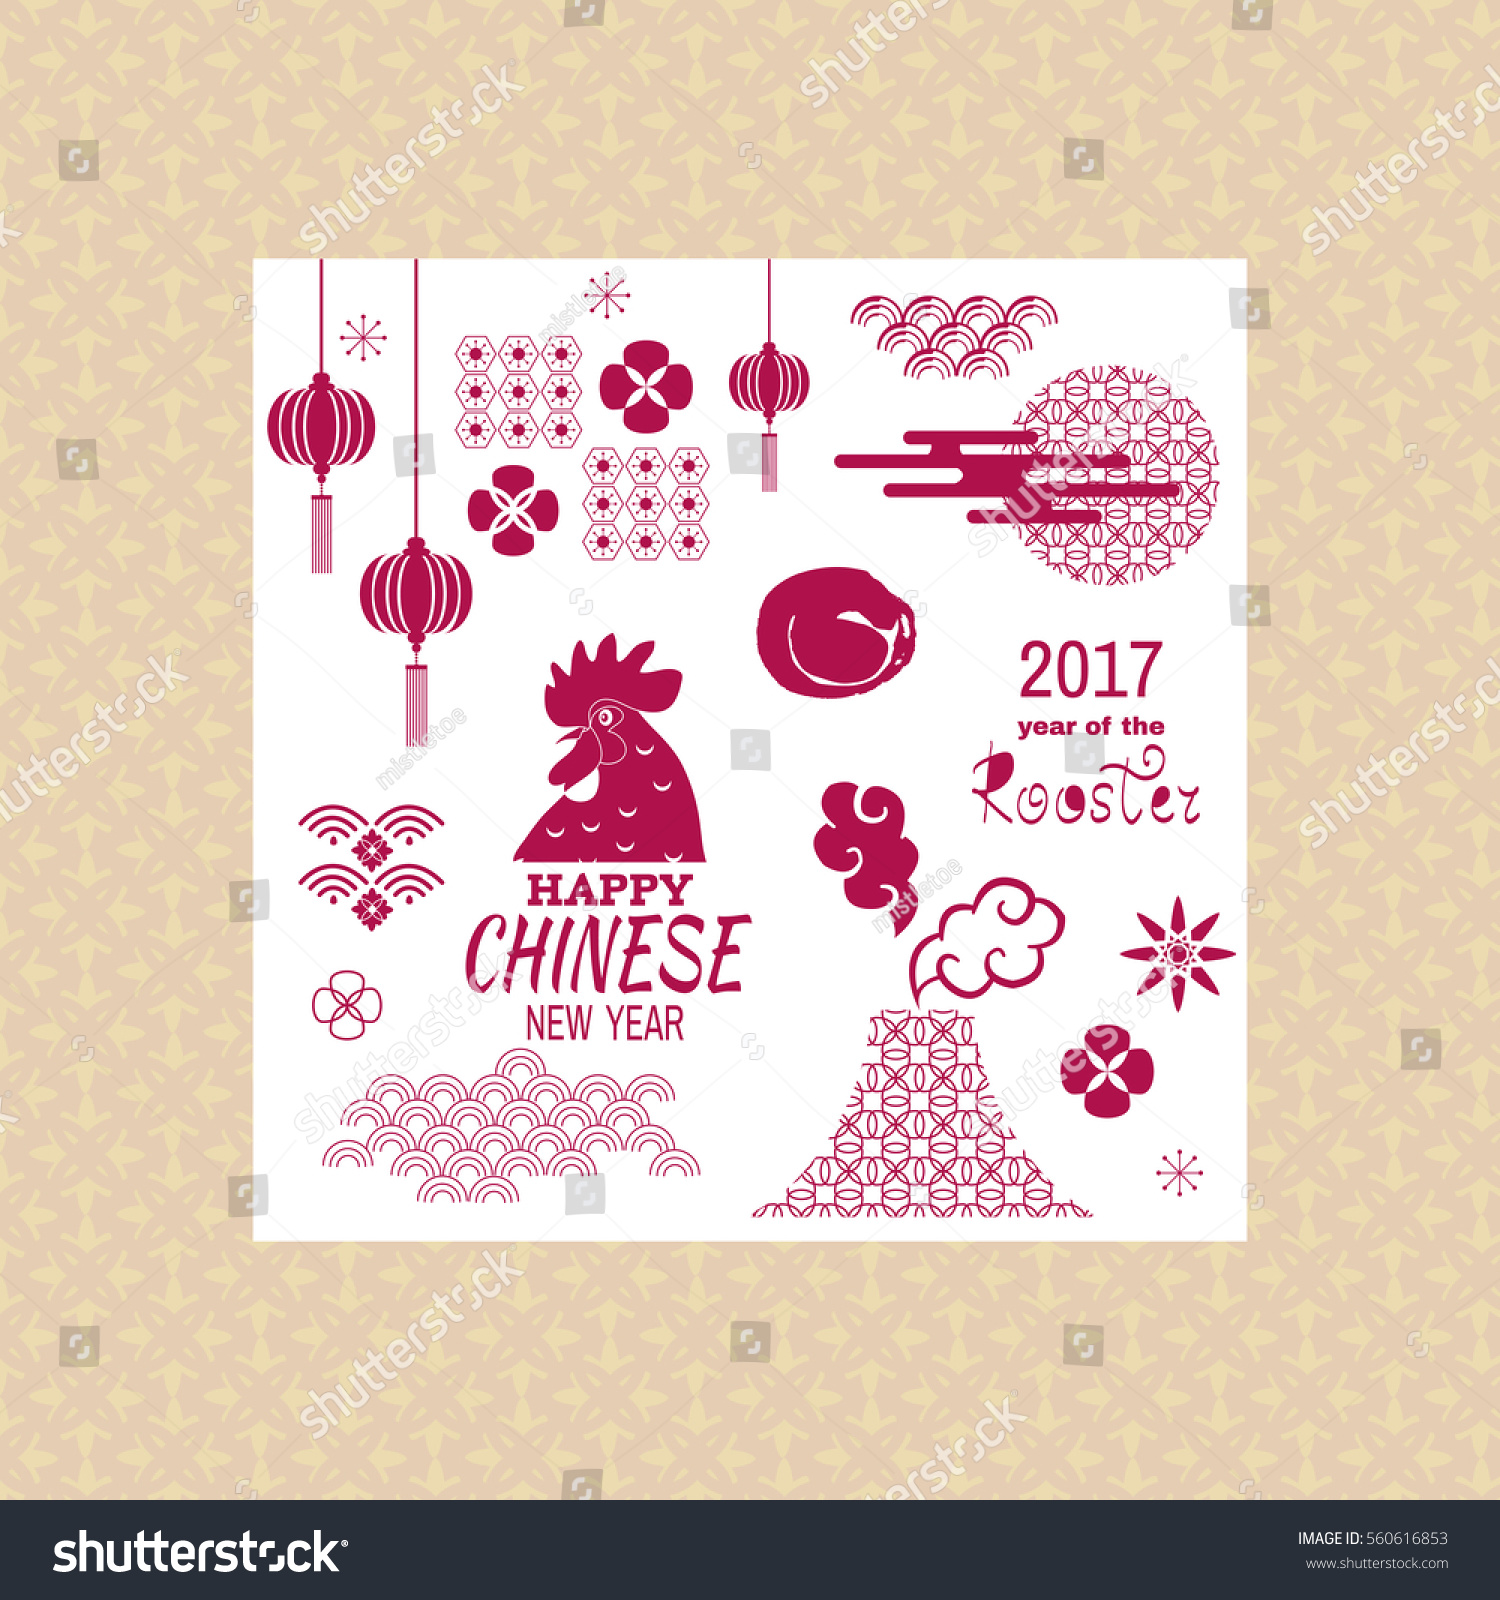 Chinese New Year Design Element 2017 Stock Vector ...